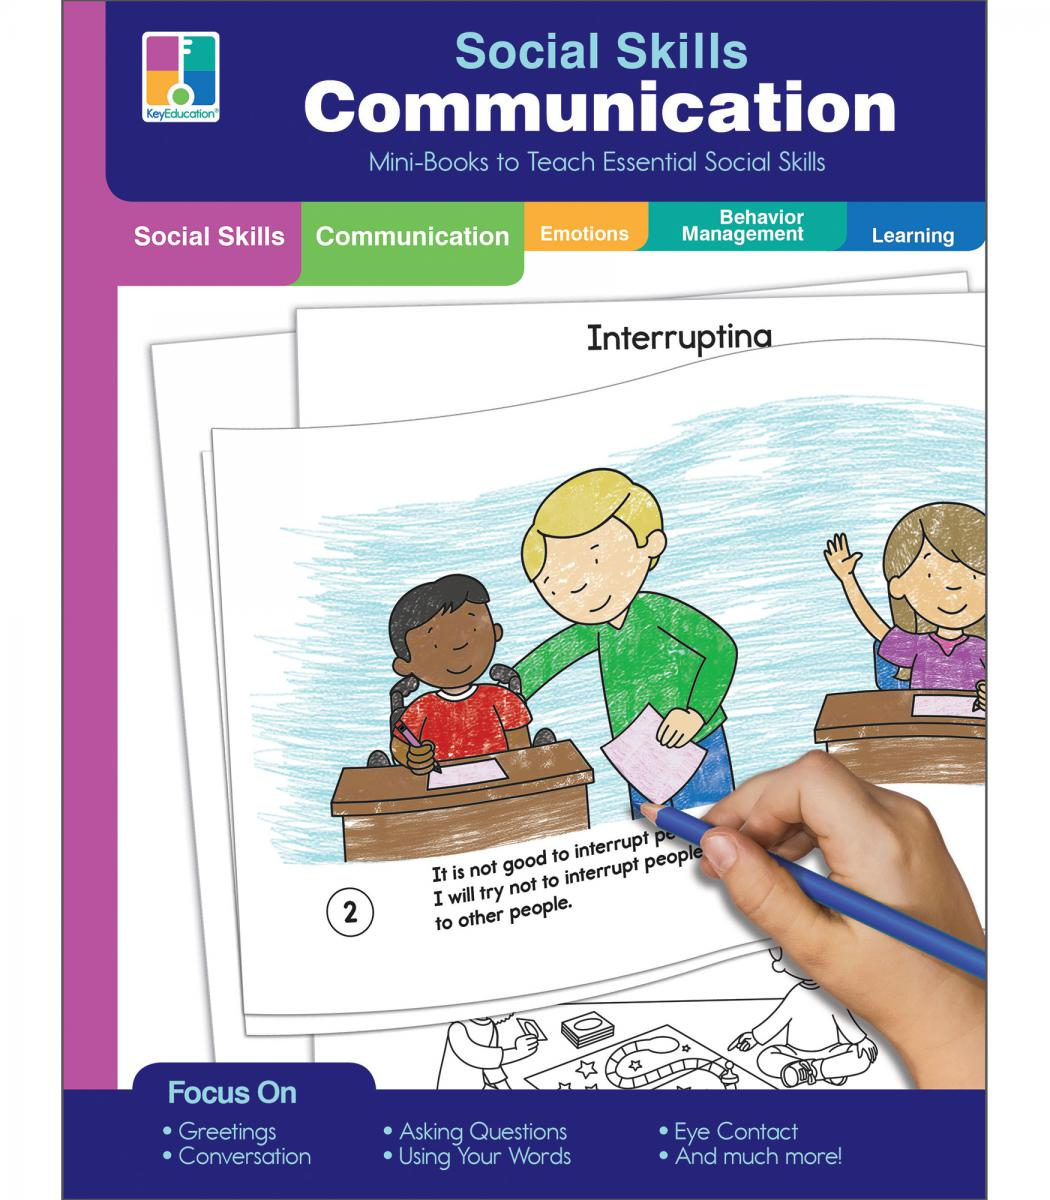 Social Skills: Communication